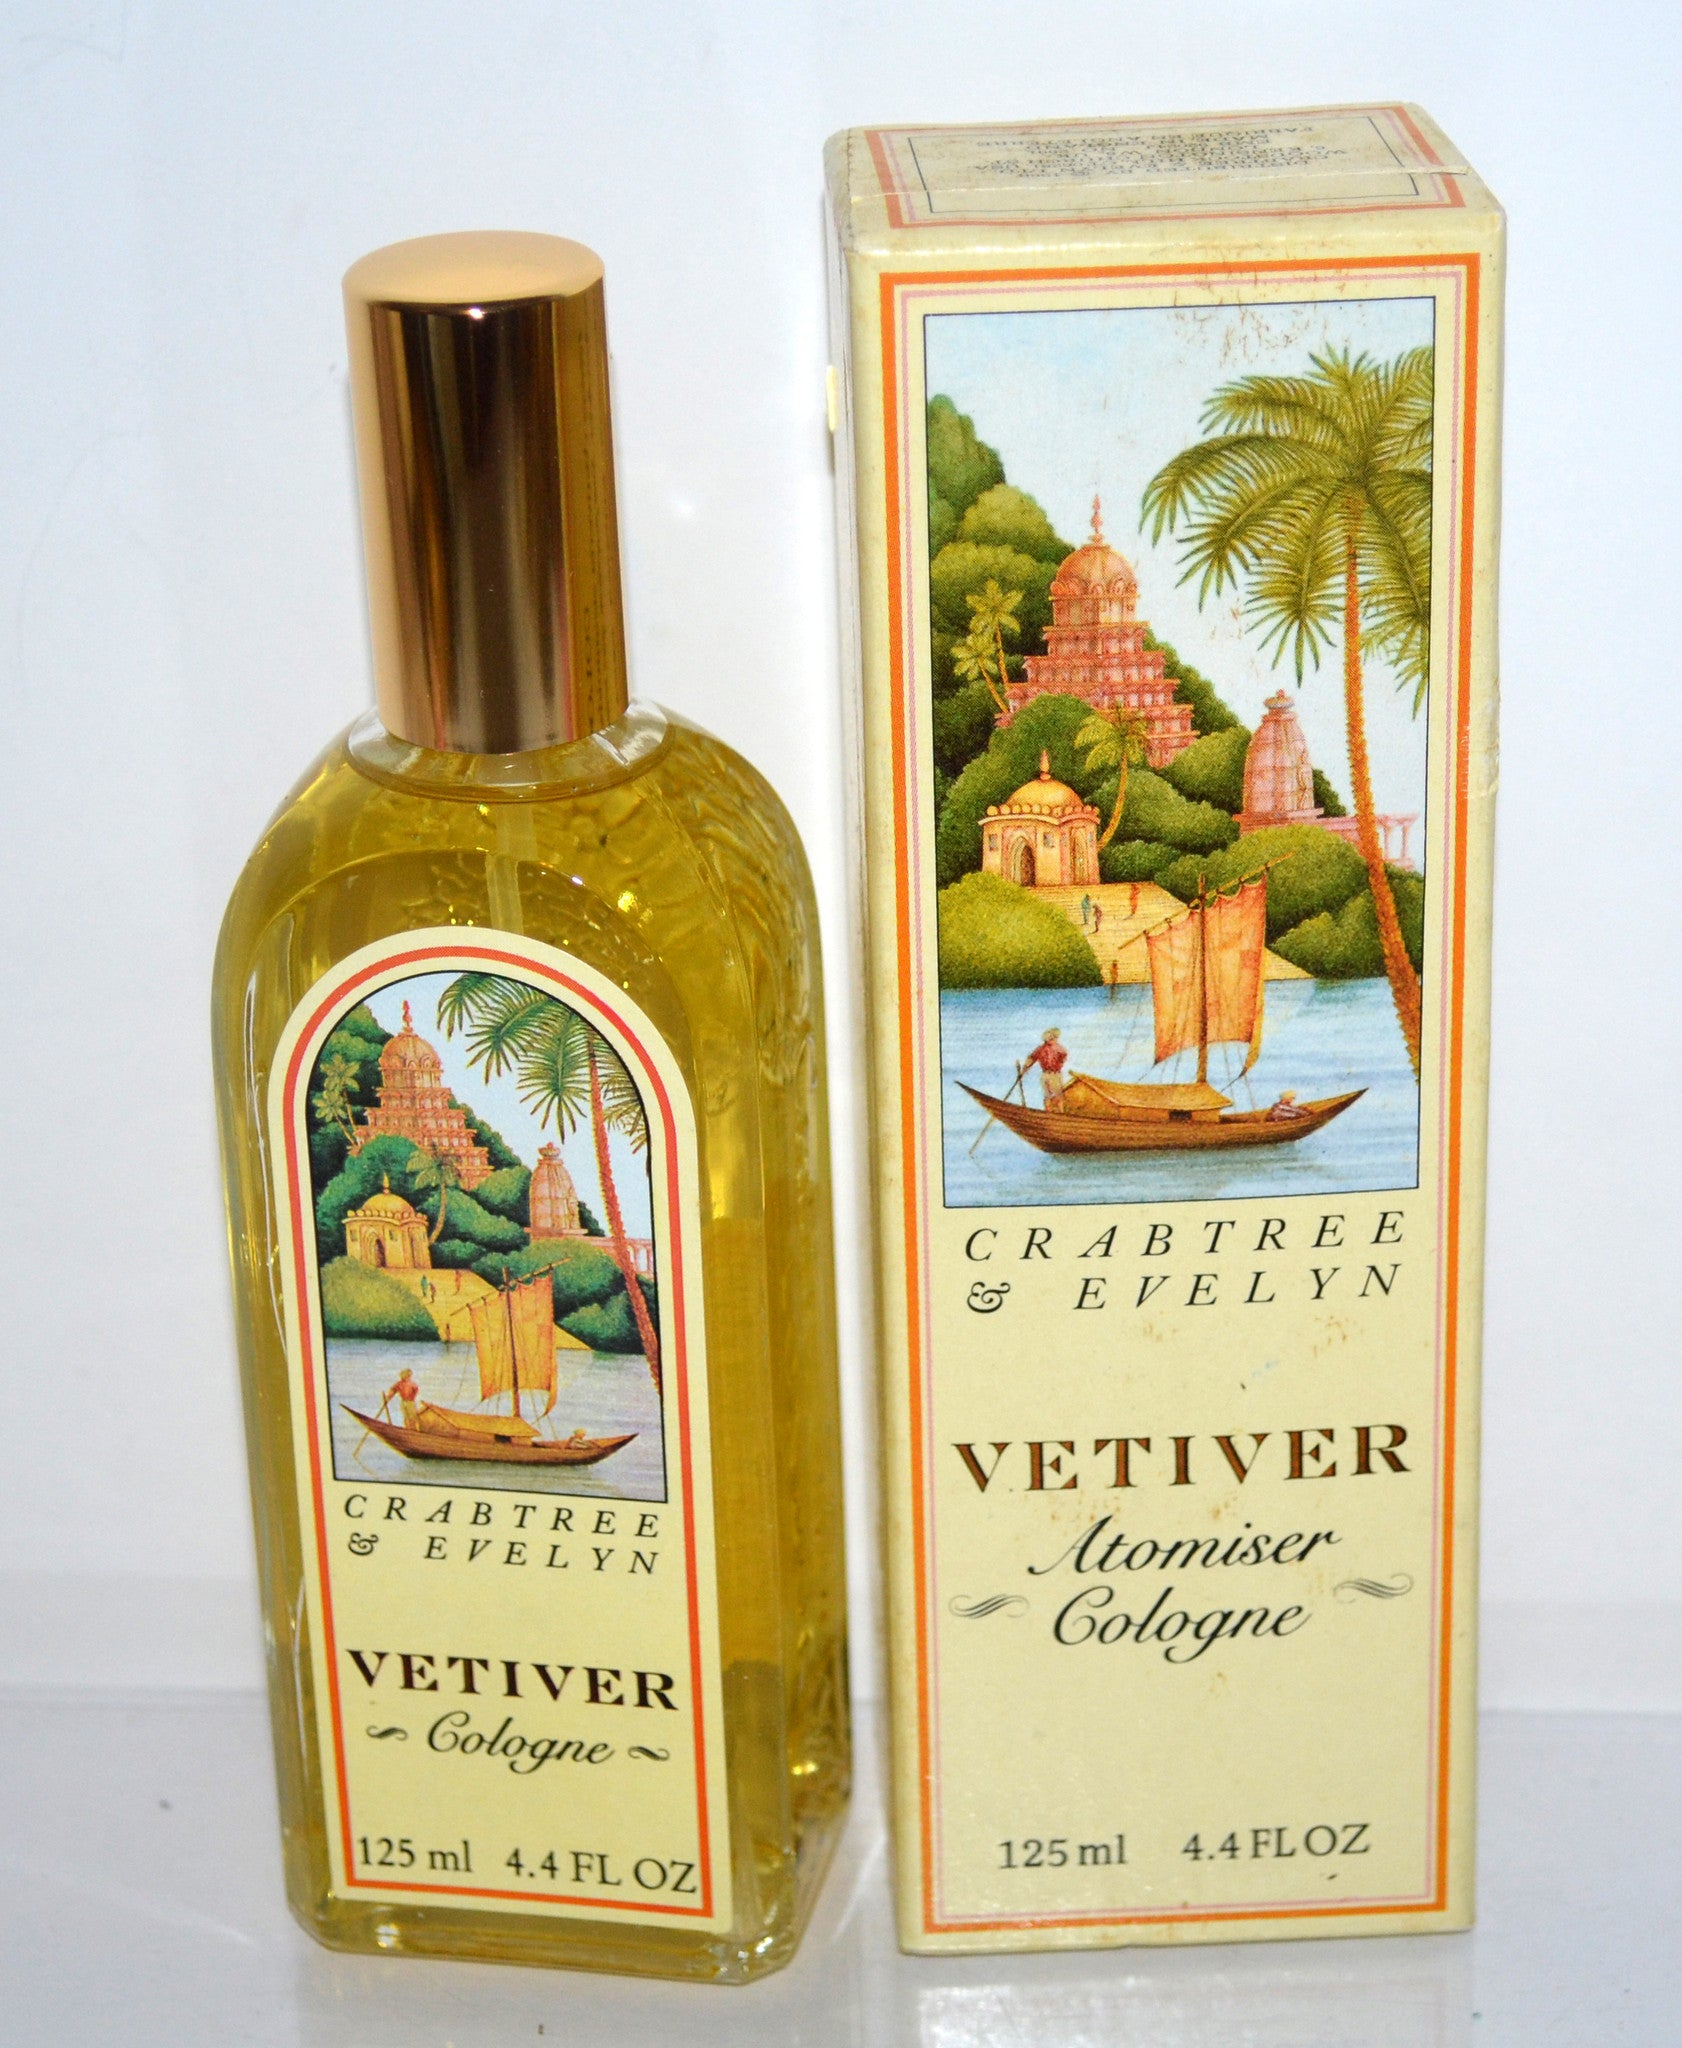 Crabtree & Evelyn Vetiver Cologne